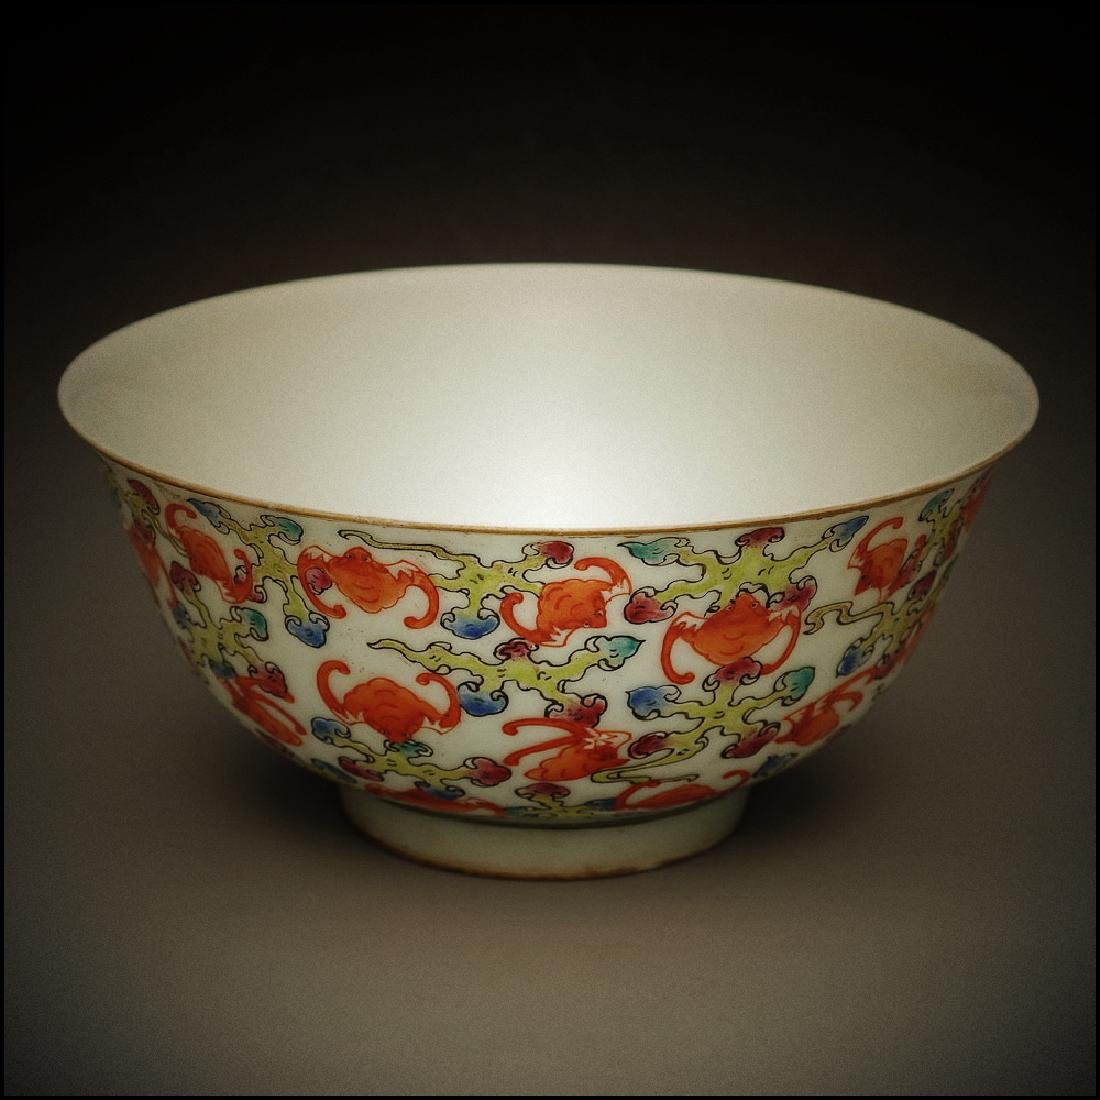 19TH QING DYNASTY FAMILLE ROSE PORCELAIN BOWL